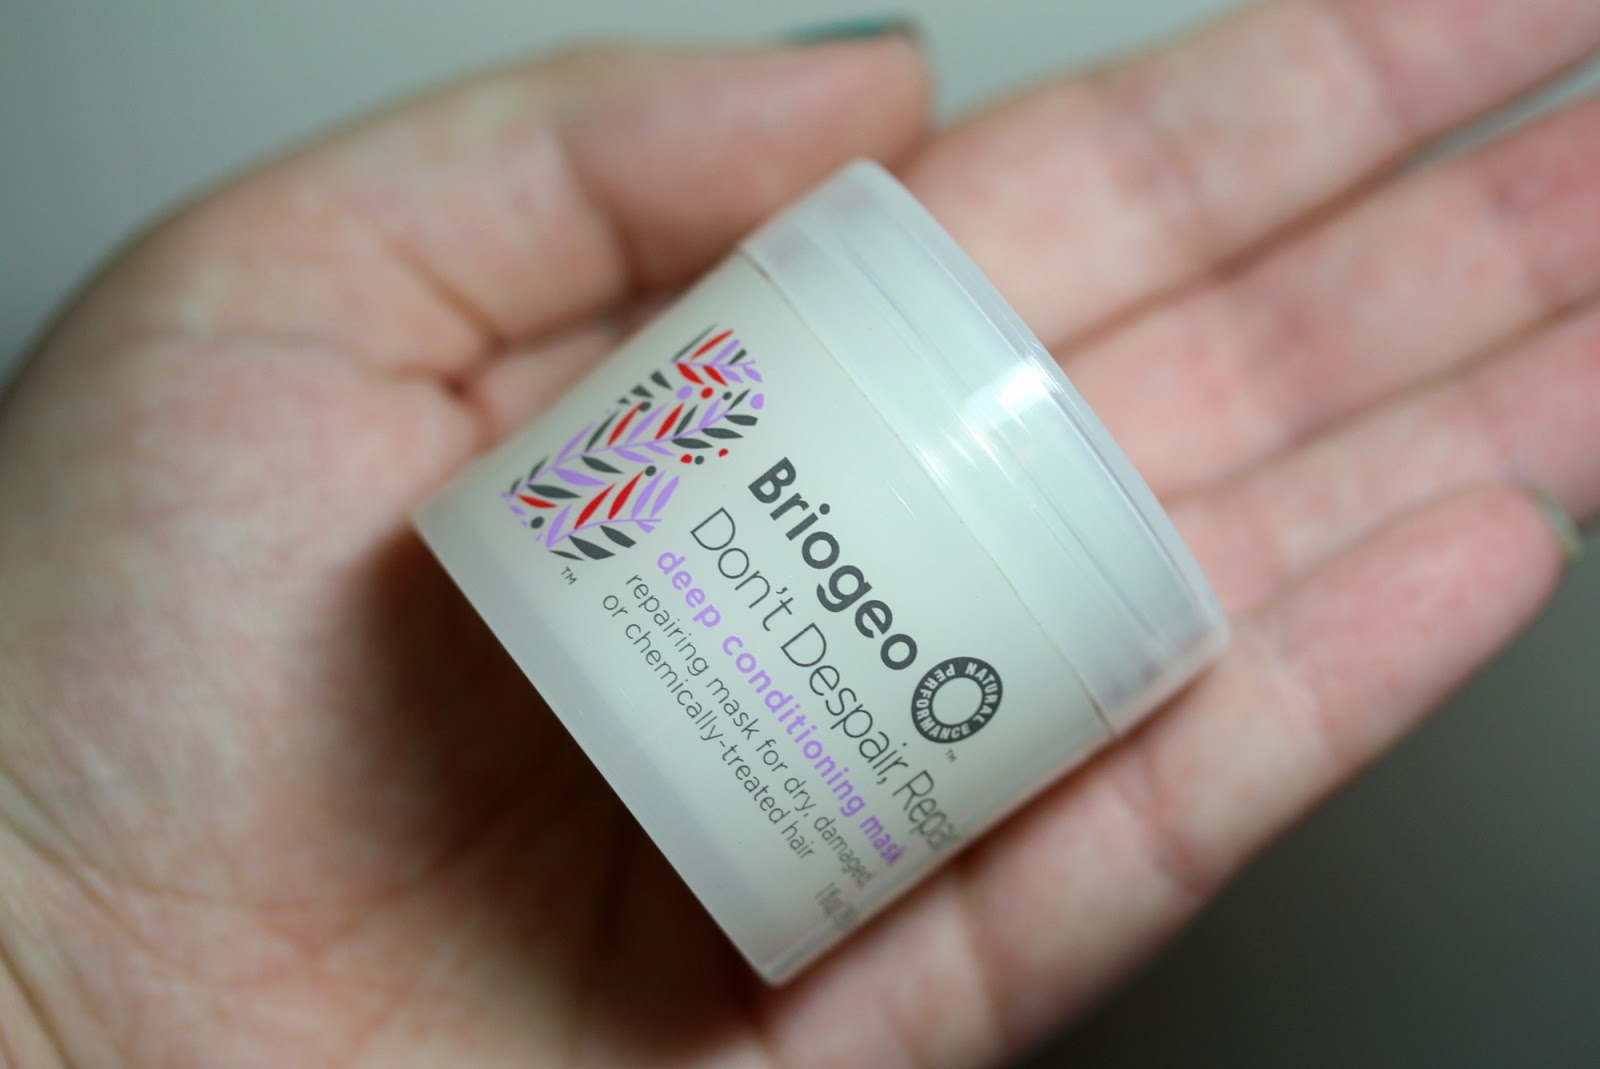 Ipsy Glam Bag January 2014 - First Impressions - Briogeo Don't Despair, Repair! Deep Conditioning Mask | Manicurity.com